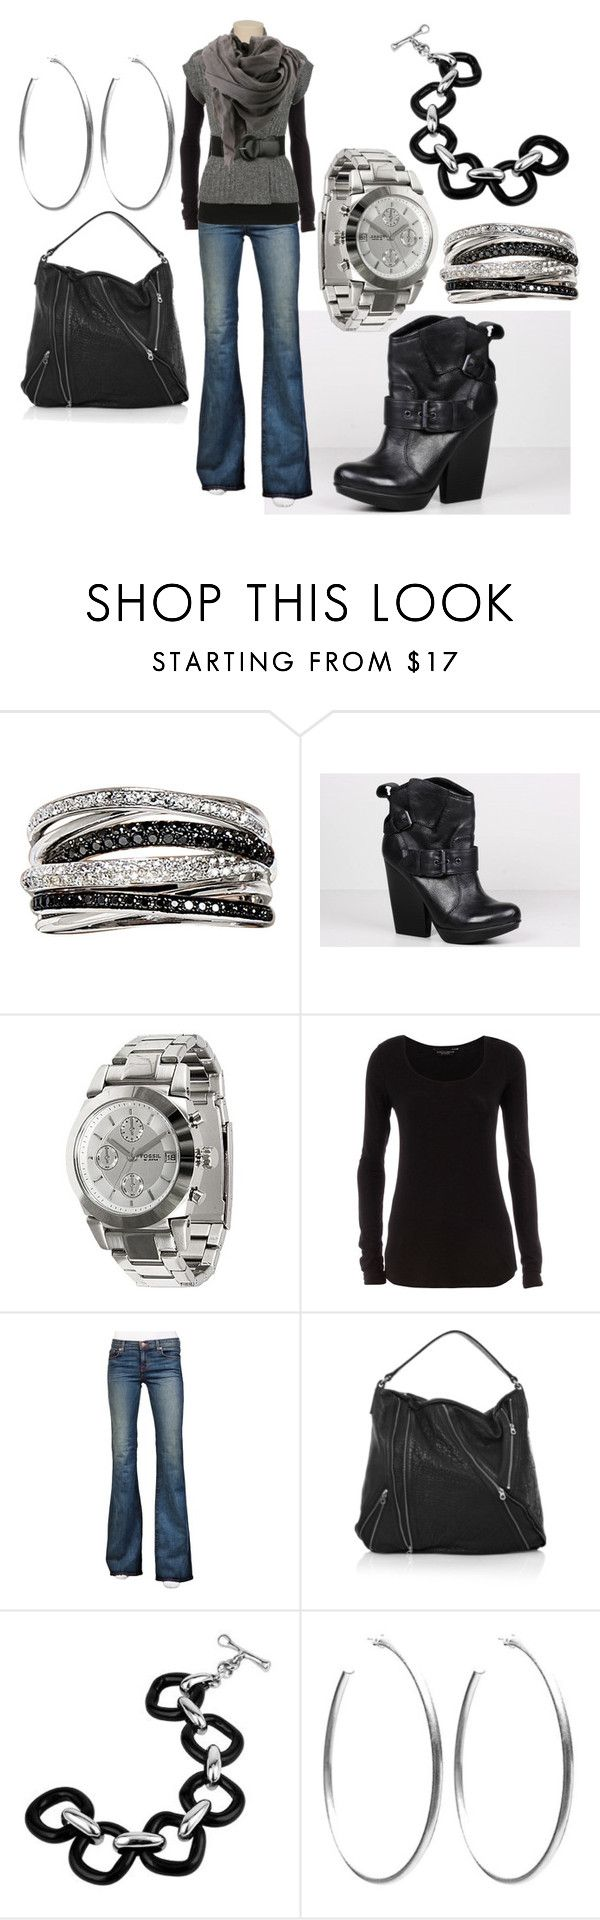 Shopping Day by jnifr on Polyvore featuring Dorothy Perkins, J Brand, Dolce Vita, Marc by Marc Jacobs, FOSSIL, Effy Jewelry, Masini Gioielli, Sheila Fajl, maurices and Bruuns Bazaar